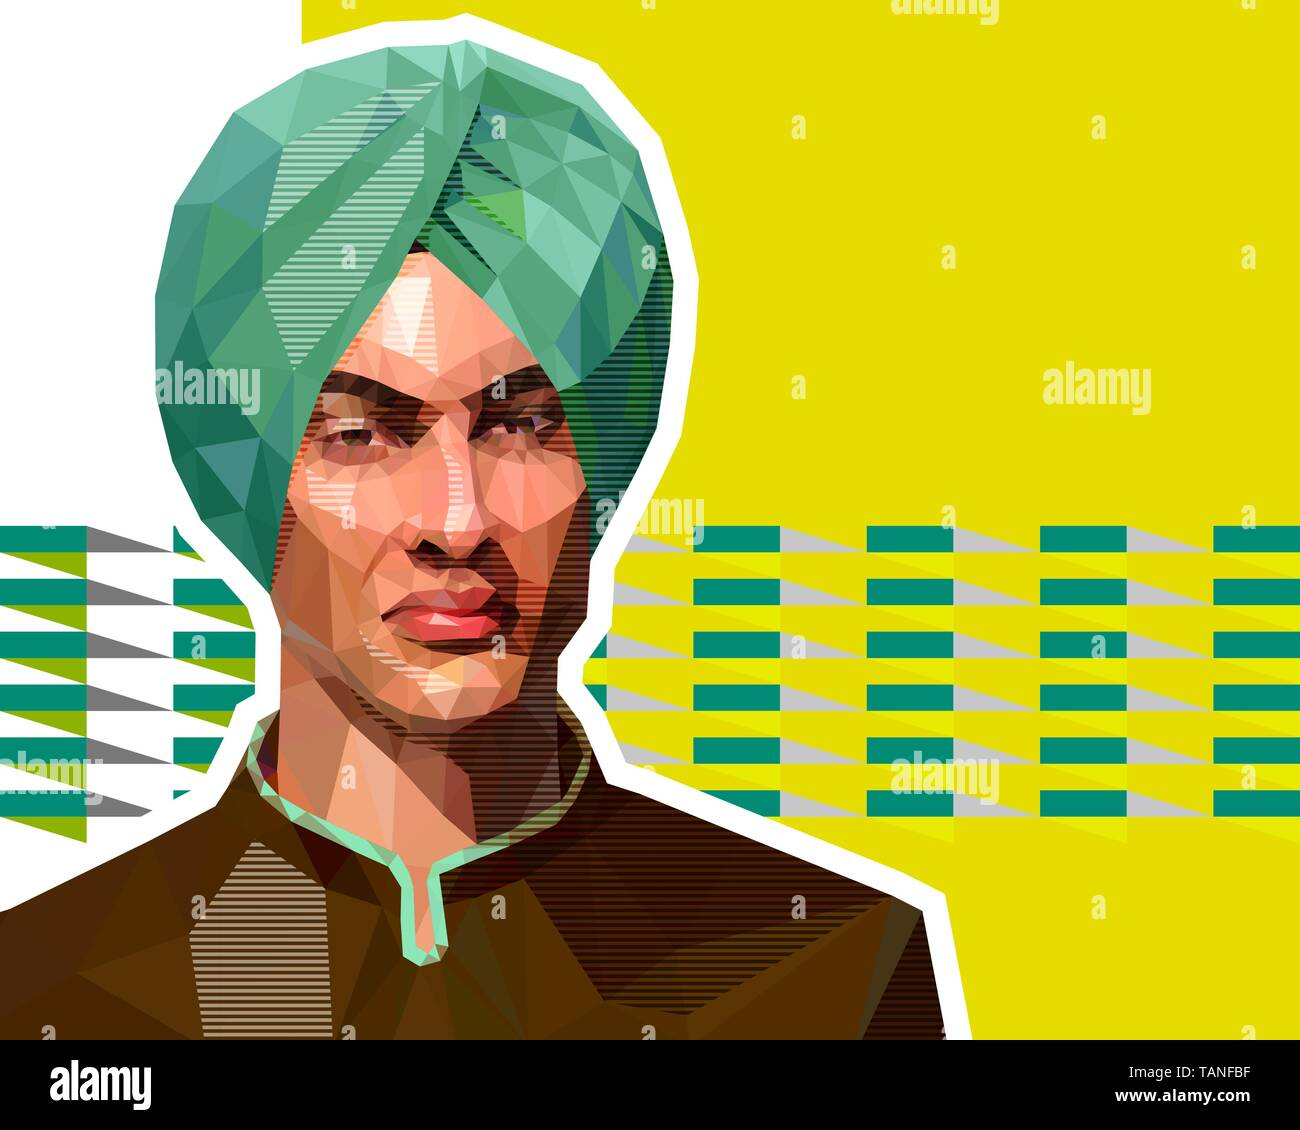 The illustration in the low polygon style - a portrait of a young Muslim in a orange turban. The man has an arrogant, gorgeous expression. Template fo - Stock Vector